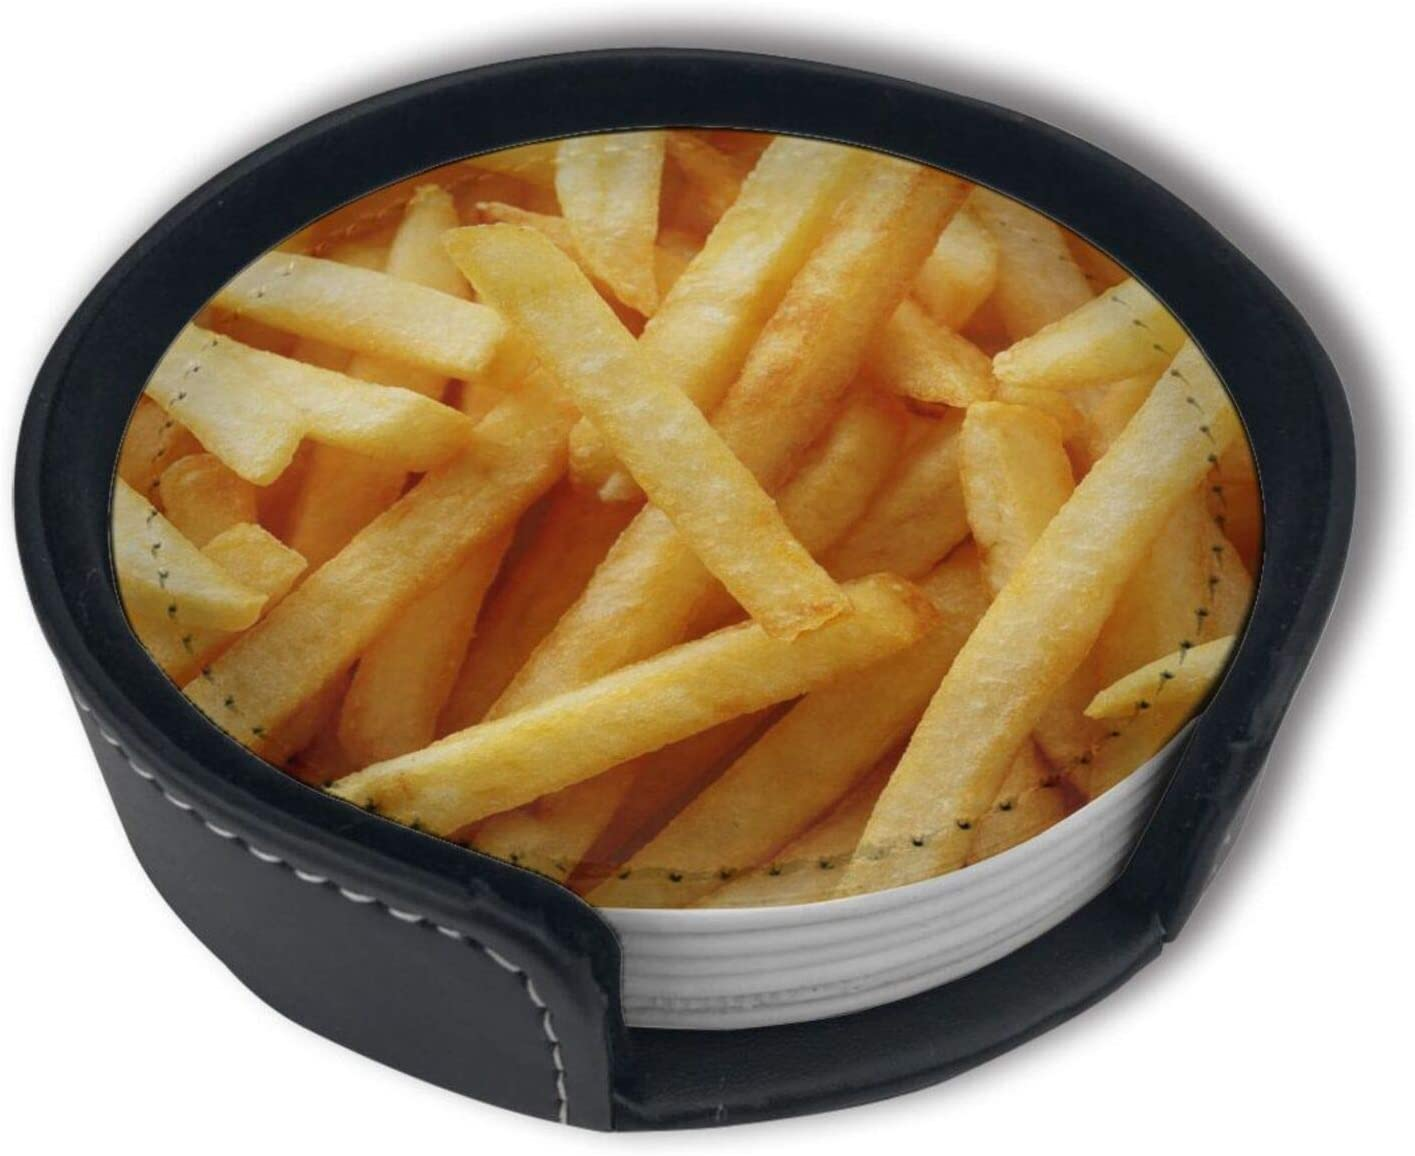 Fast Food Secrets French Fries Leather Coasters For Drinks, Round Absorbent Coasters With Holder, For Kinds Of Mugs And Cups, For Home Bar Car - Set Of 6